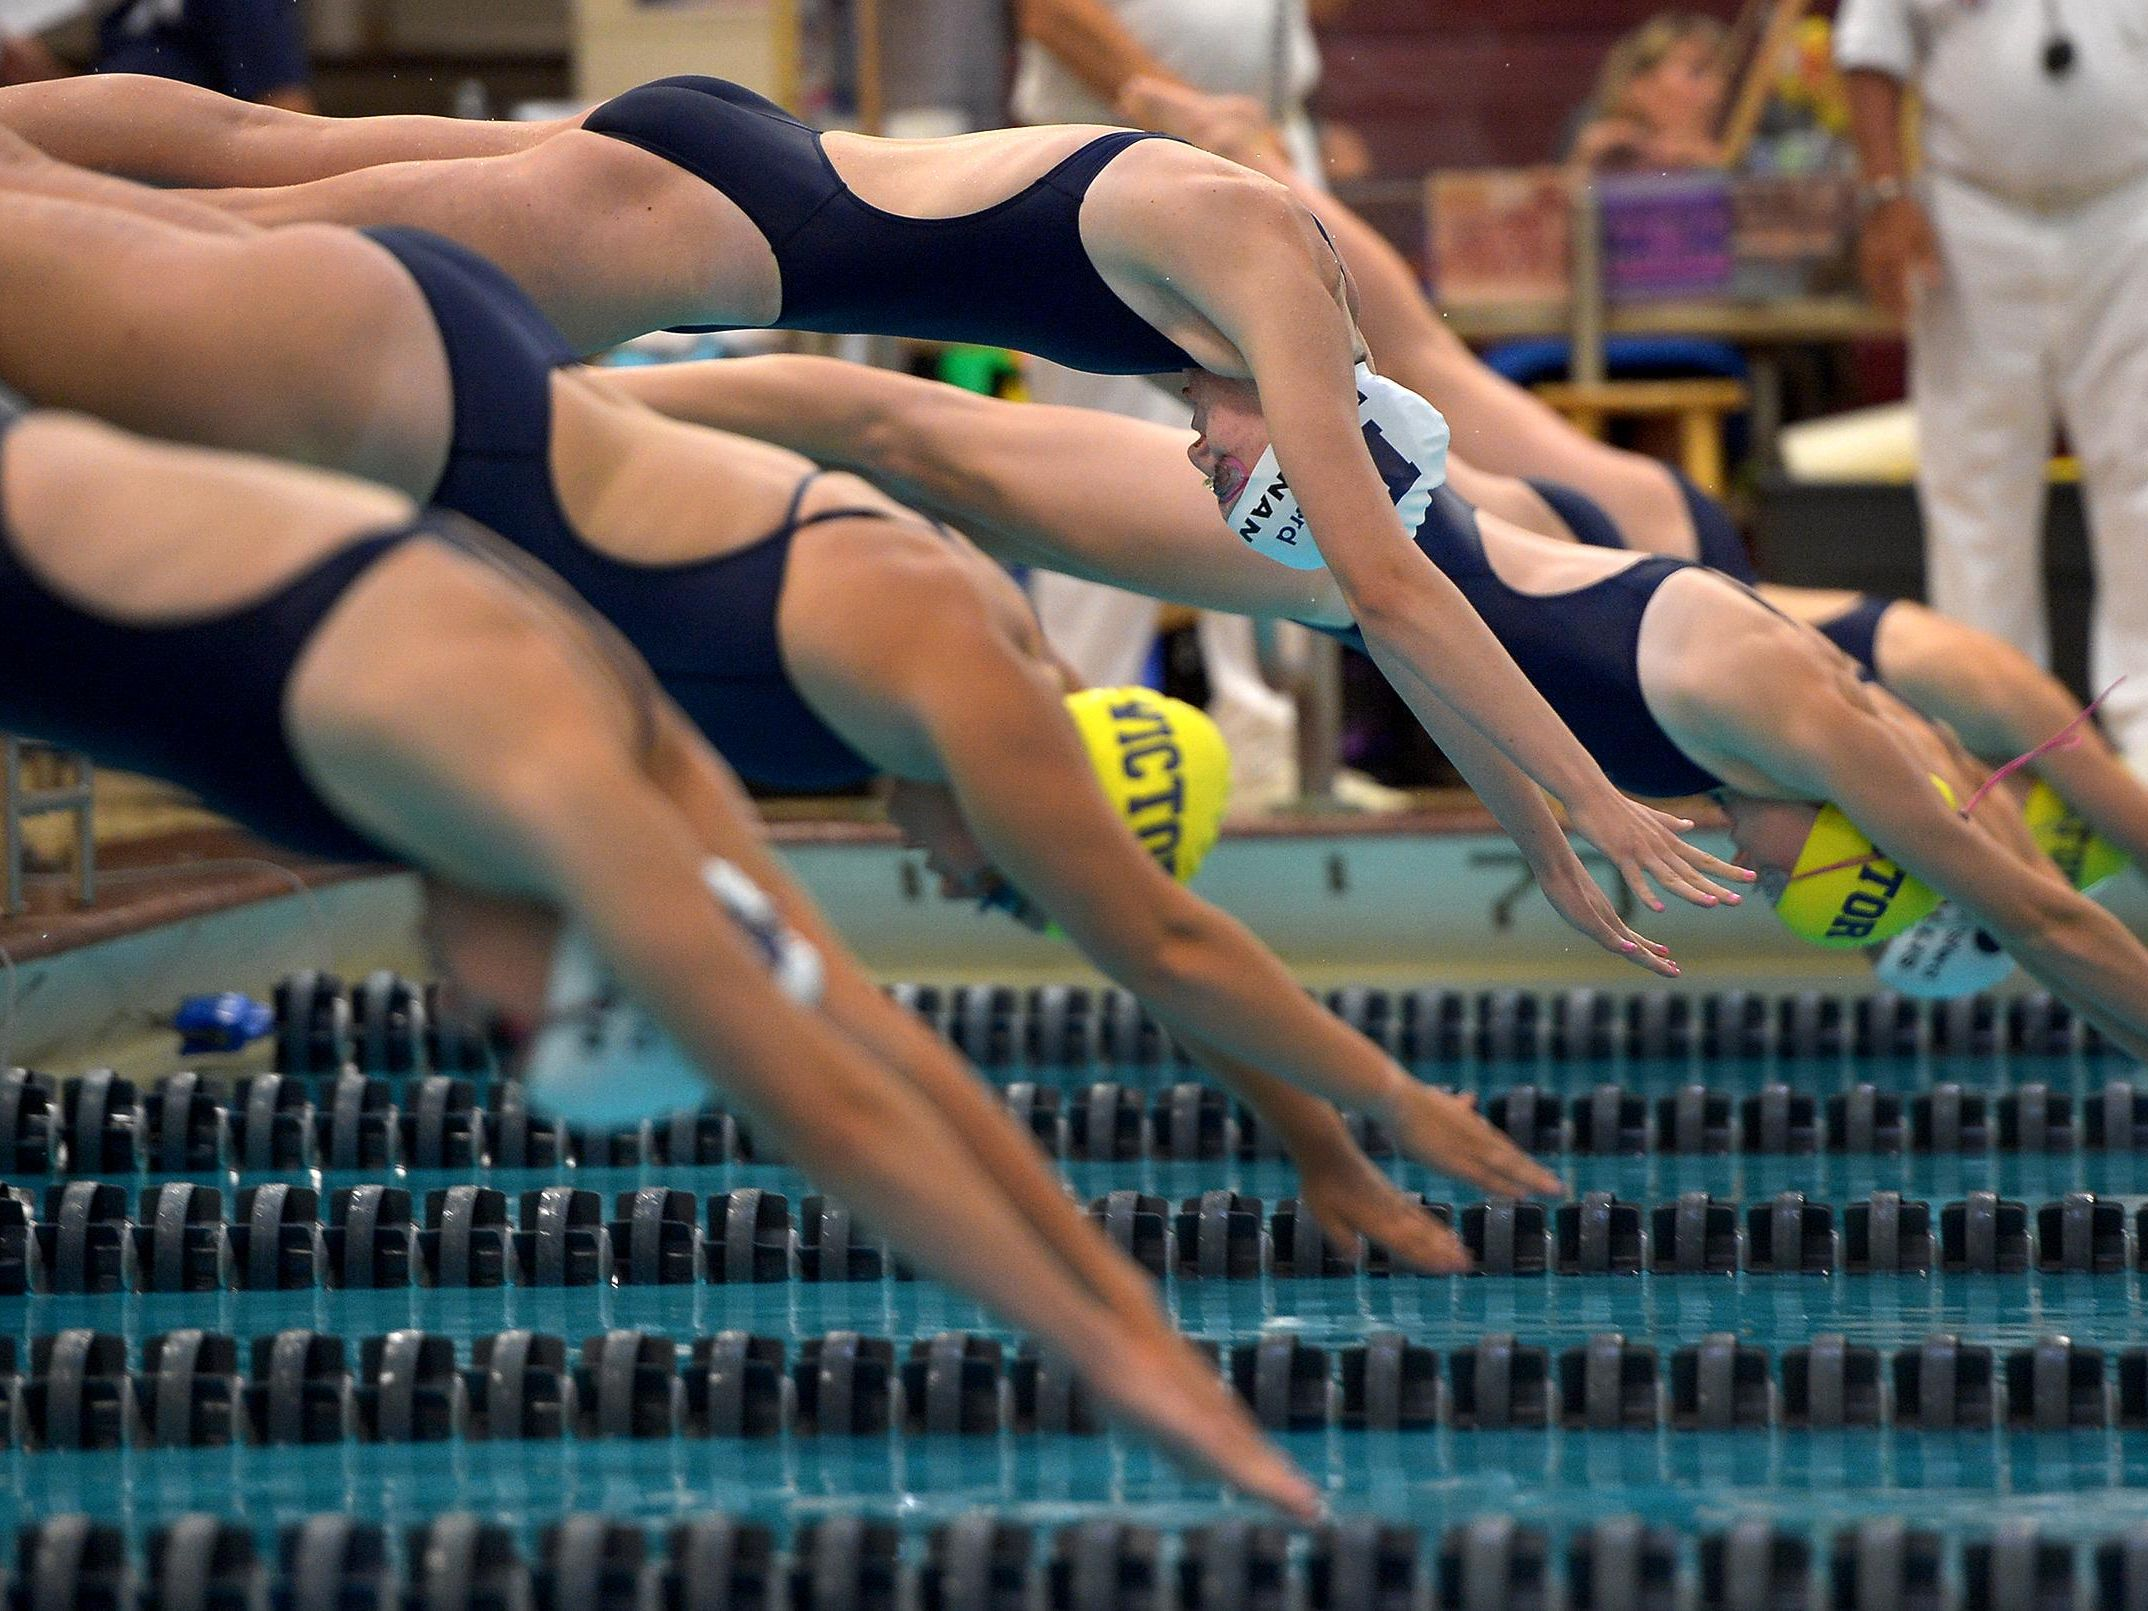 Pittsford's Molly Brennan, top center, and other swimmers take off from the blocks in the 100 yard freestyle.